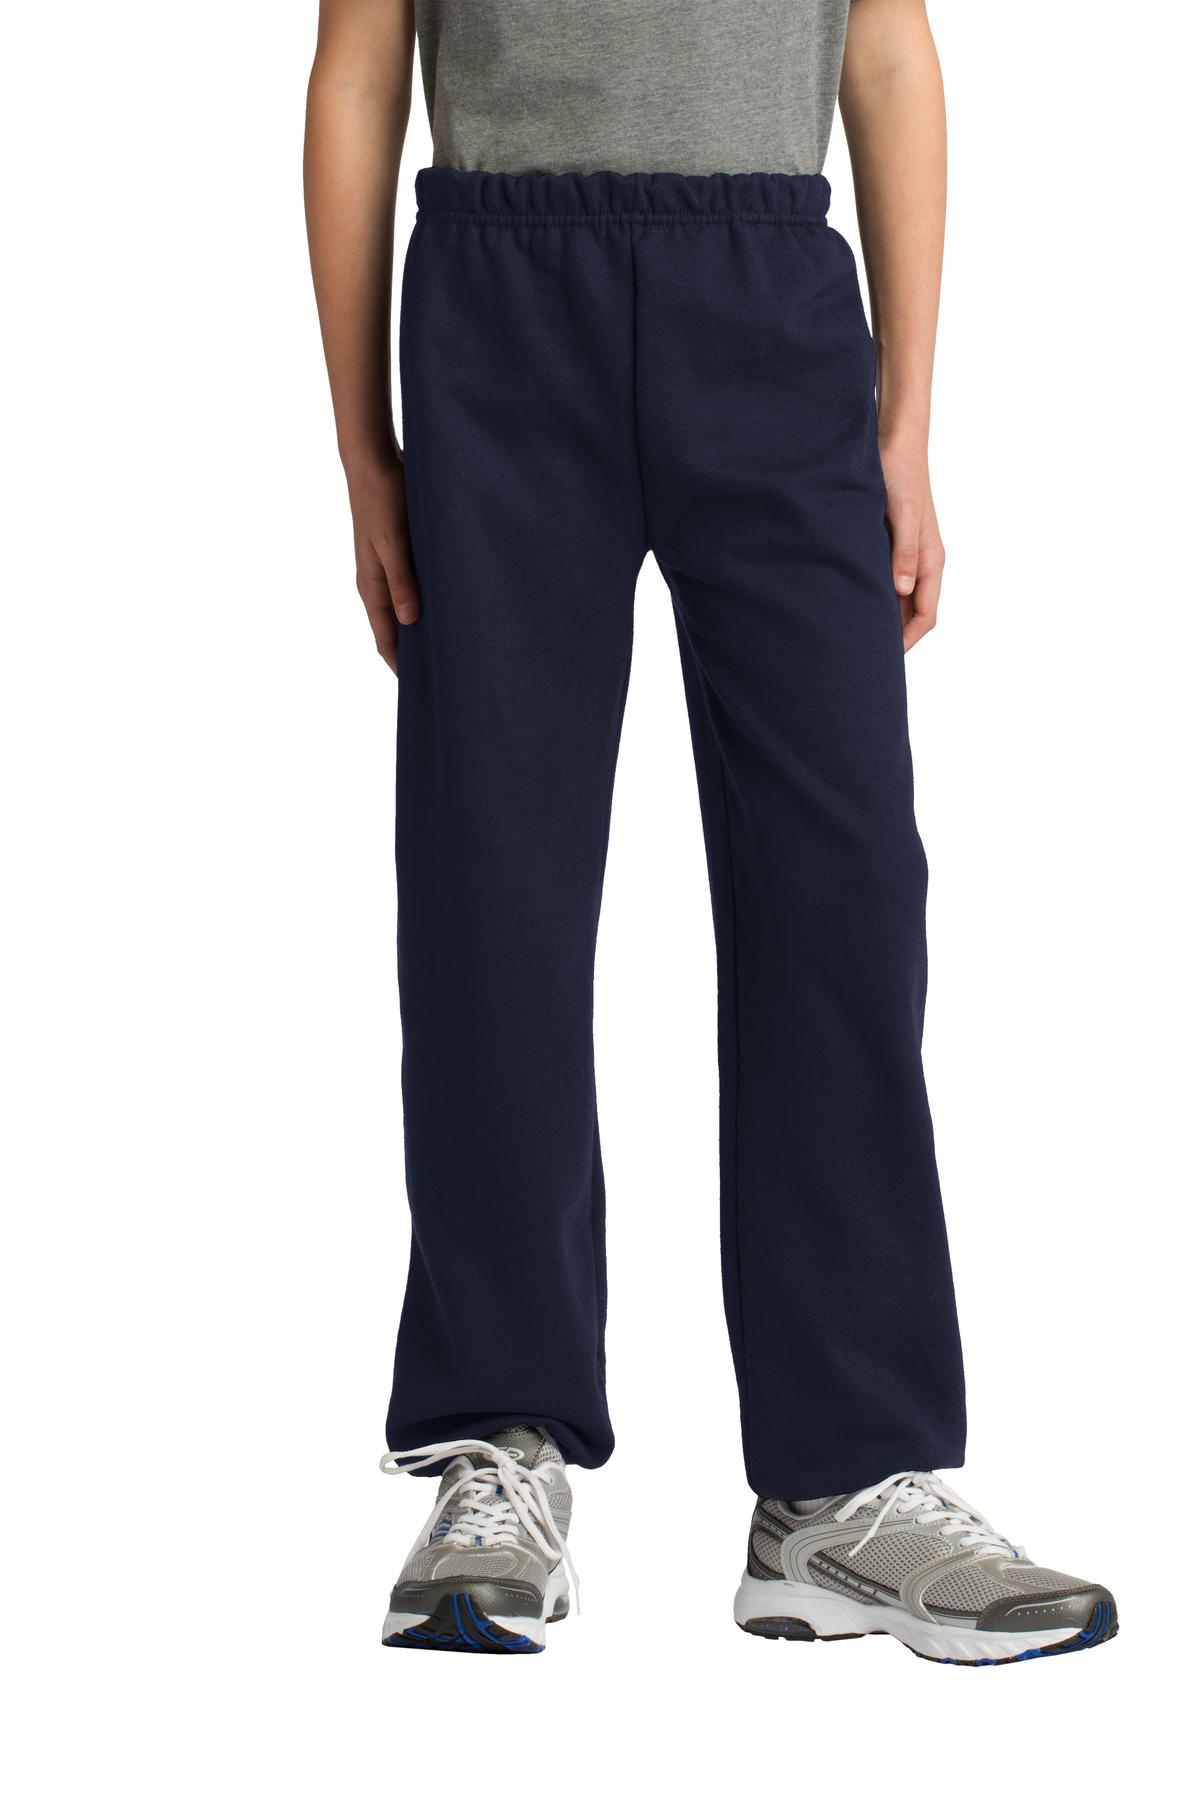 Gildan ®  Youth Heavy Blend™ Sweatpant. 18200B - Navy